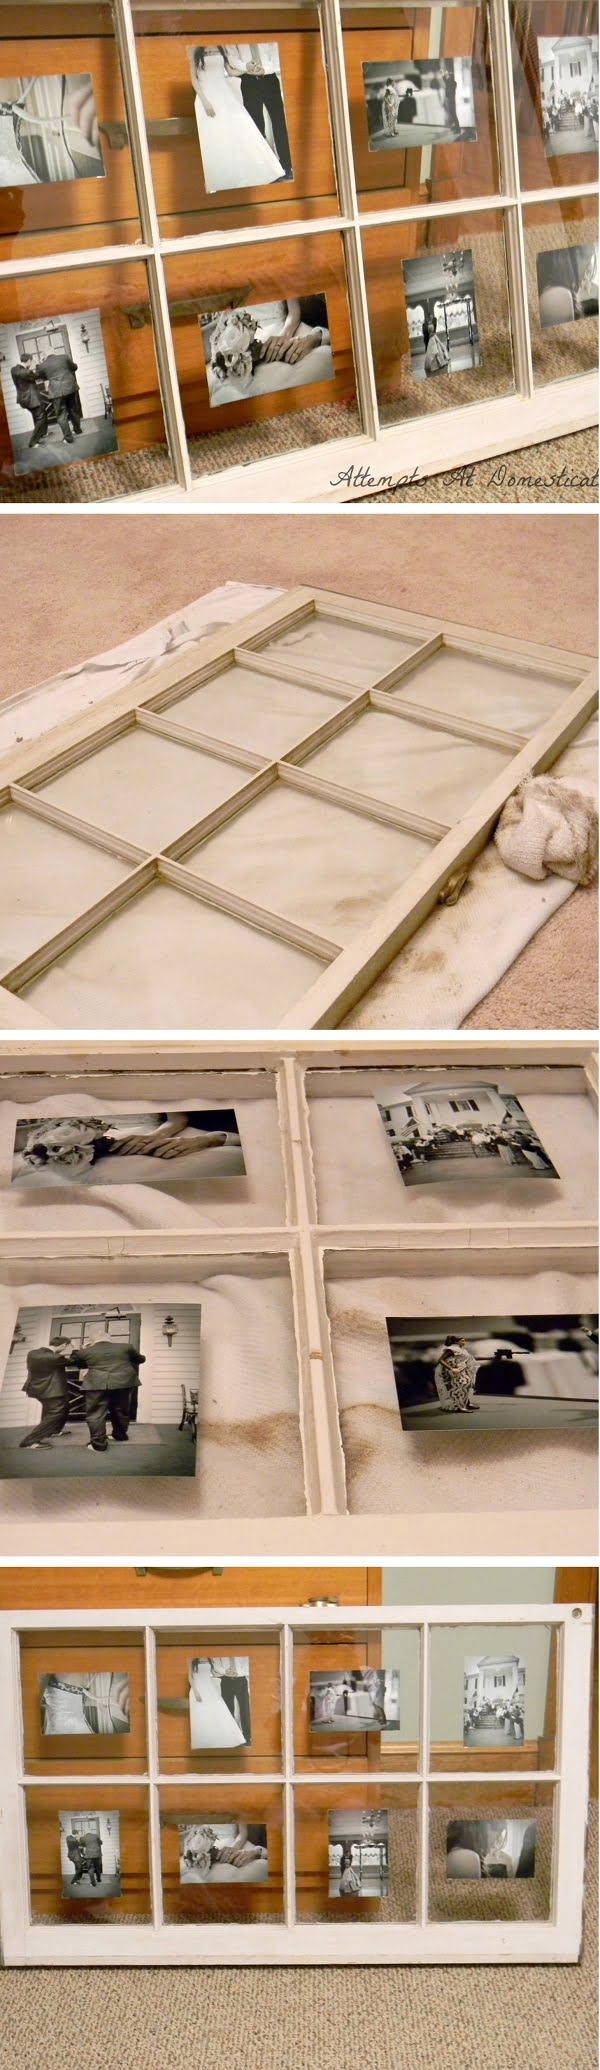 Check out the tutorial how to make a DIY photo display frame from an old window